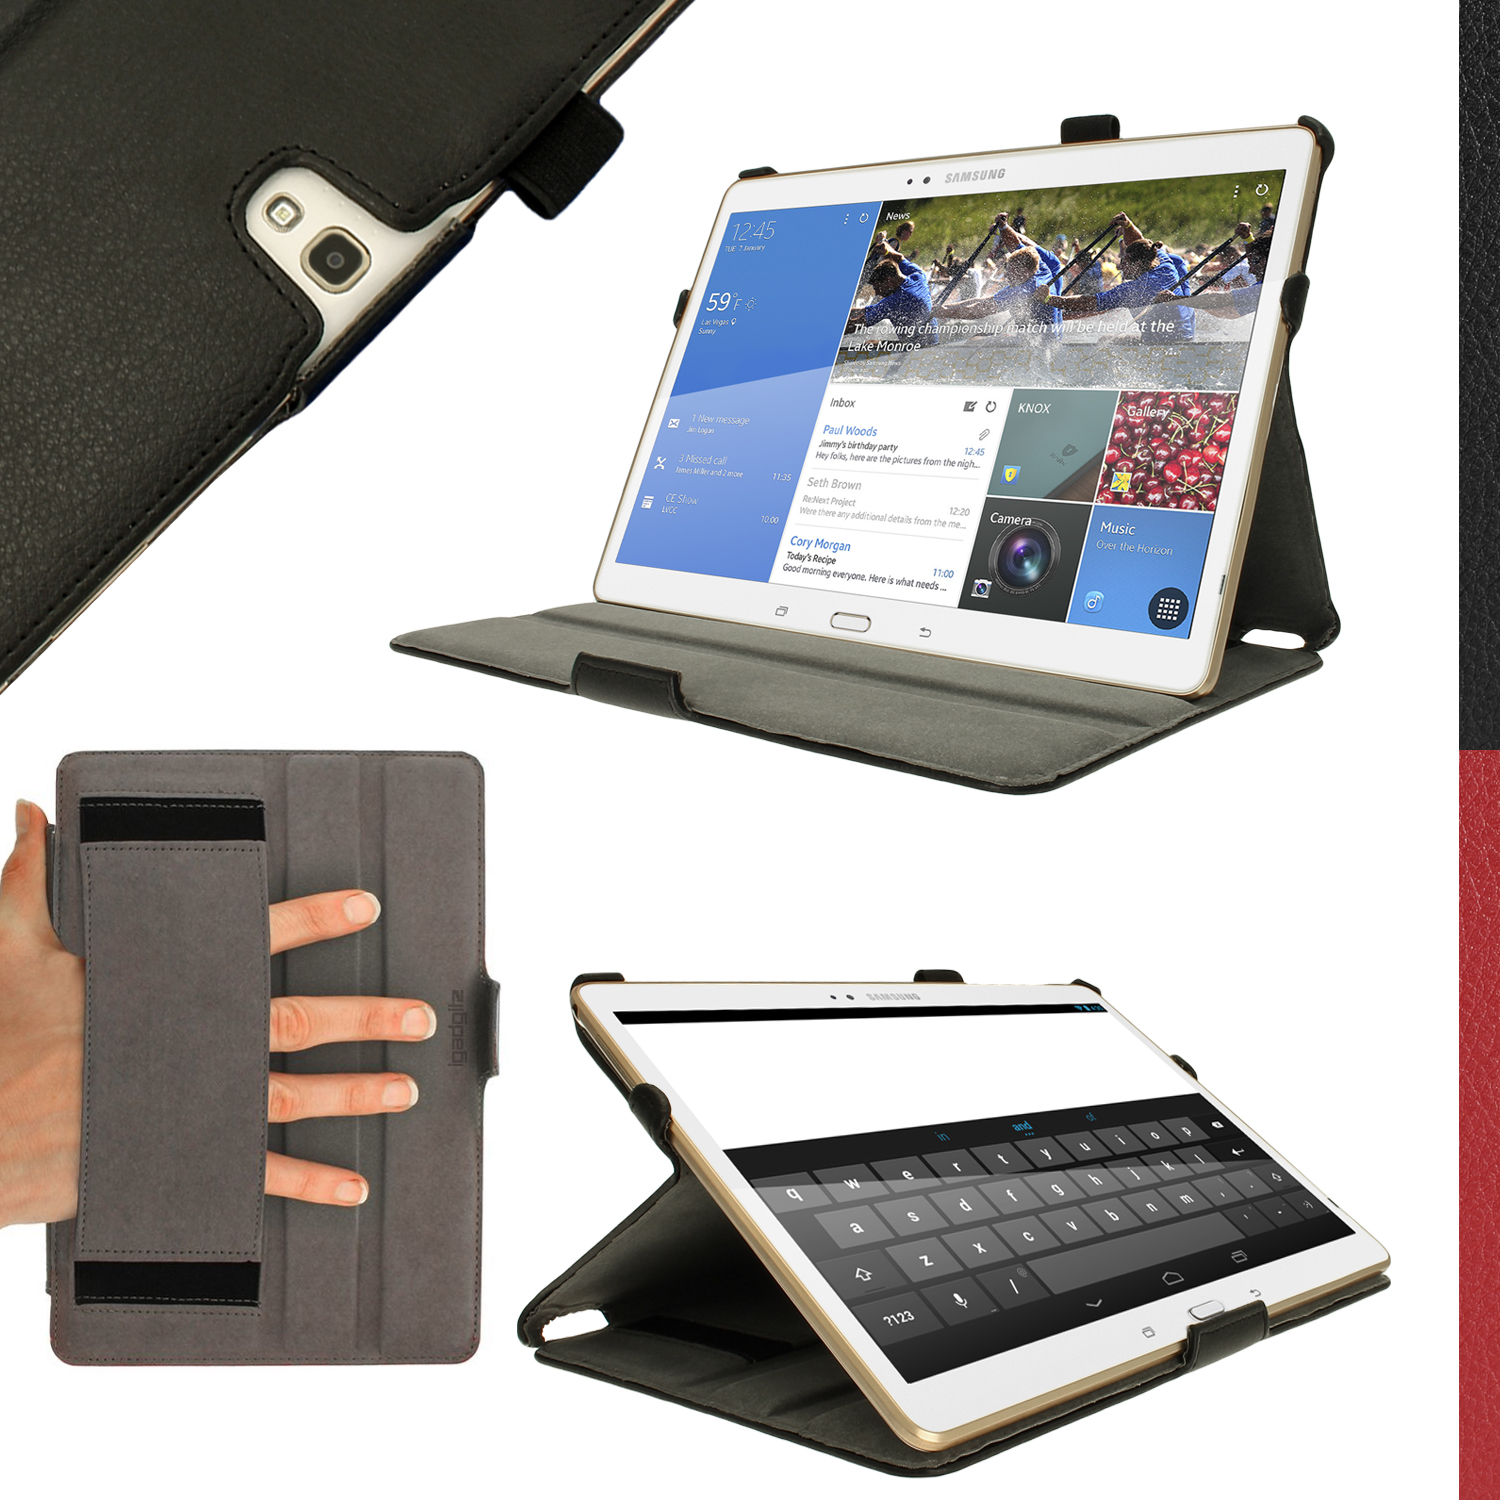 """iGadgitz Black PU Leather Case for Samsung Galaxy Tab S 10.5"""" SM-T800 with Stand, Sleep/Wake, Hand Strap + Screen Prot"""